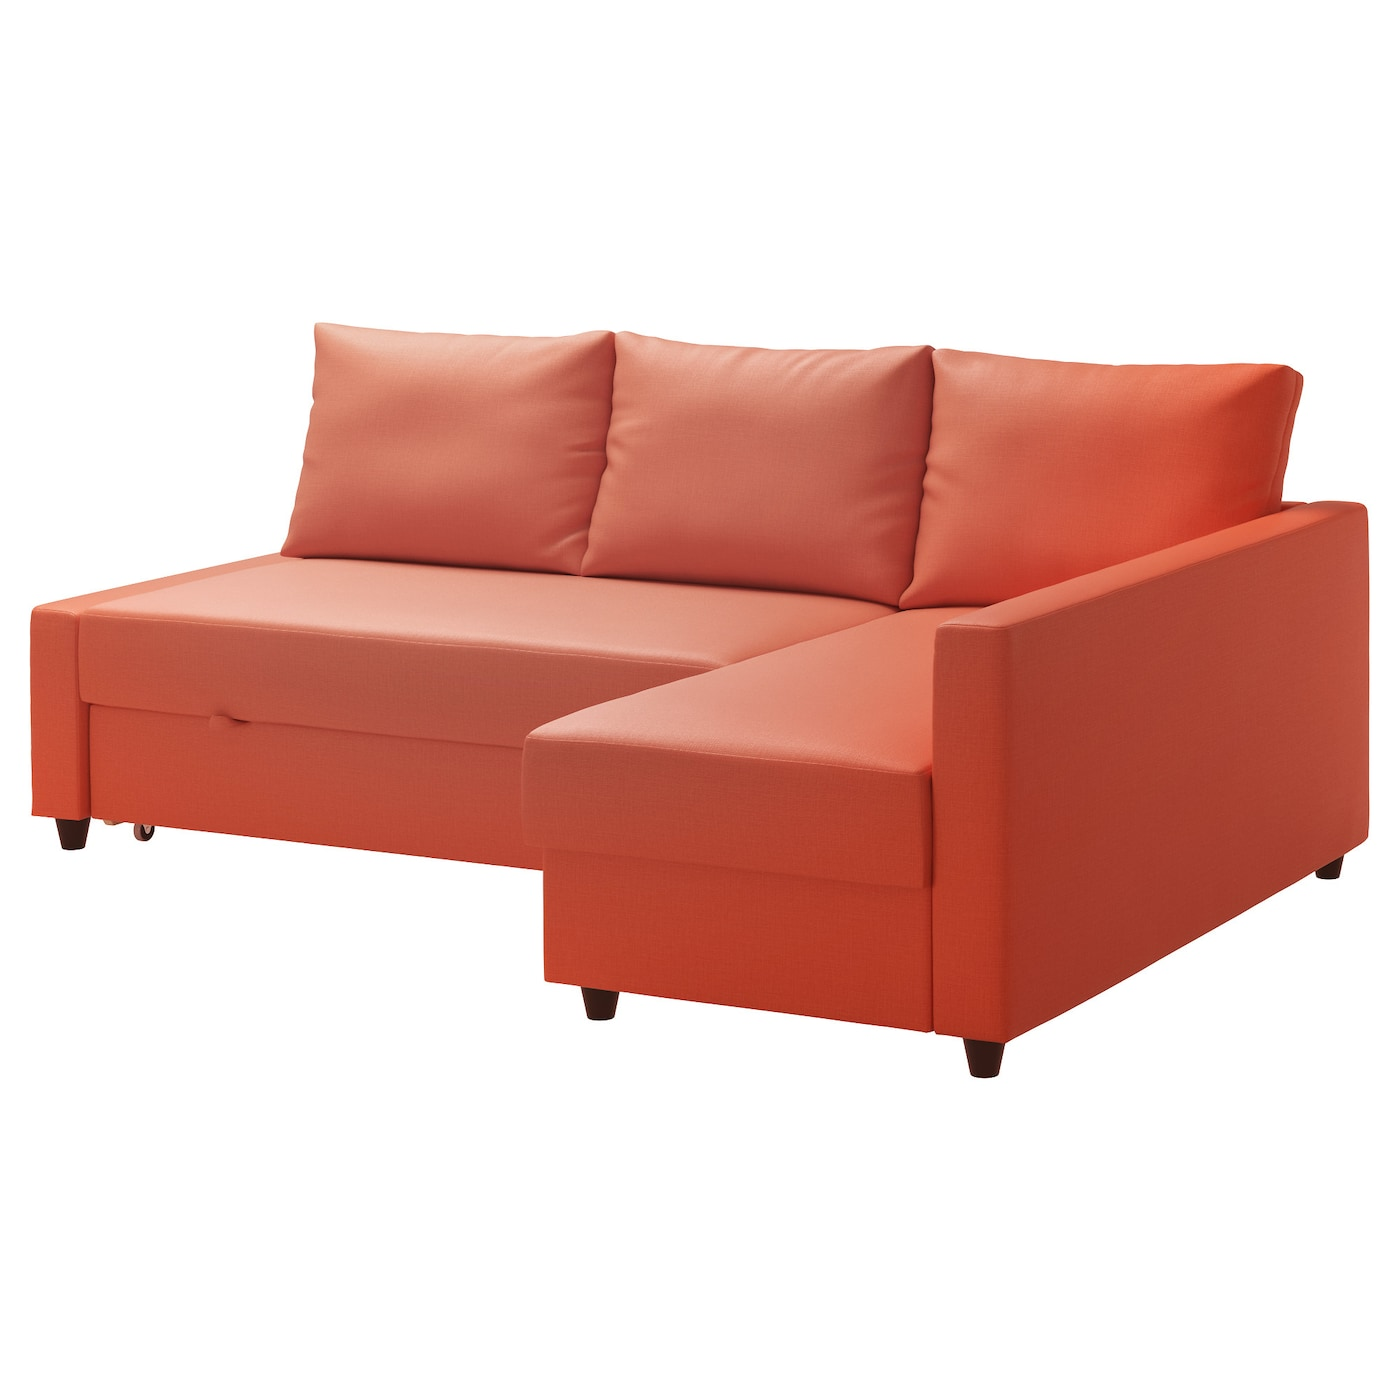 Friheten corner sofa bed with storage skiftebo dark orange ikea Corner couch with sofa bed